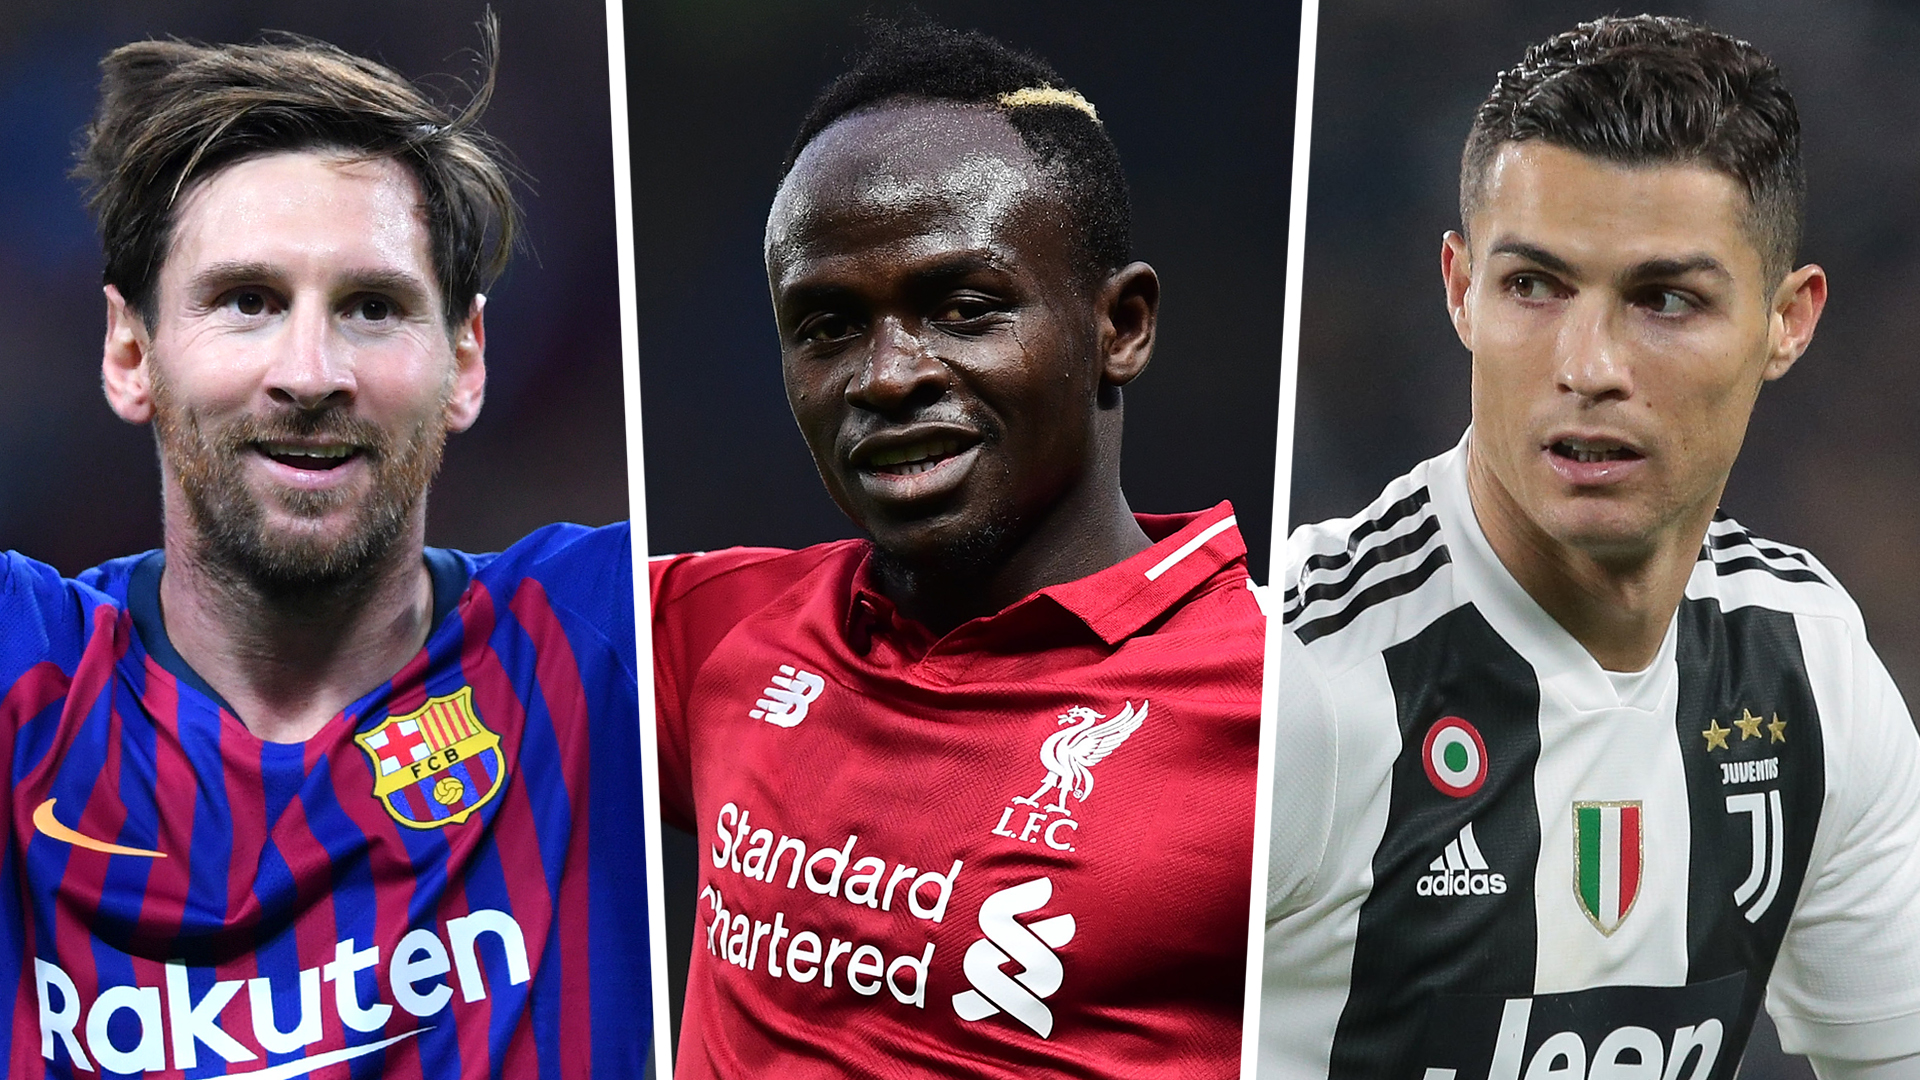 Seven members of Liverpool's Champions League-winning squad up for Ballon d'Or